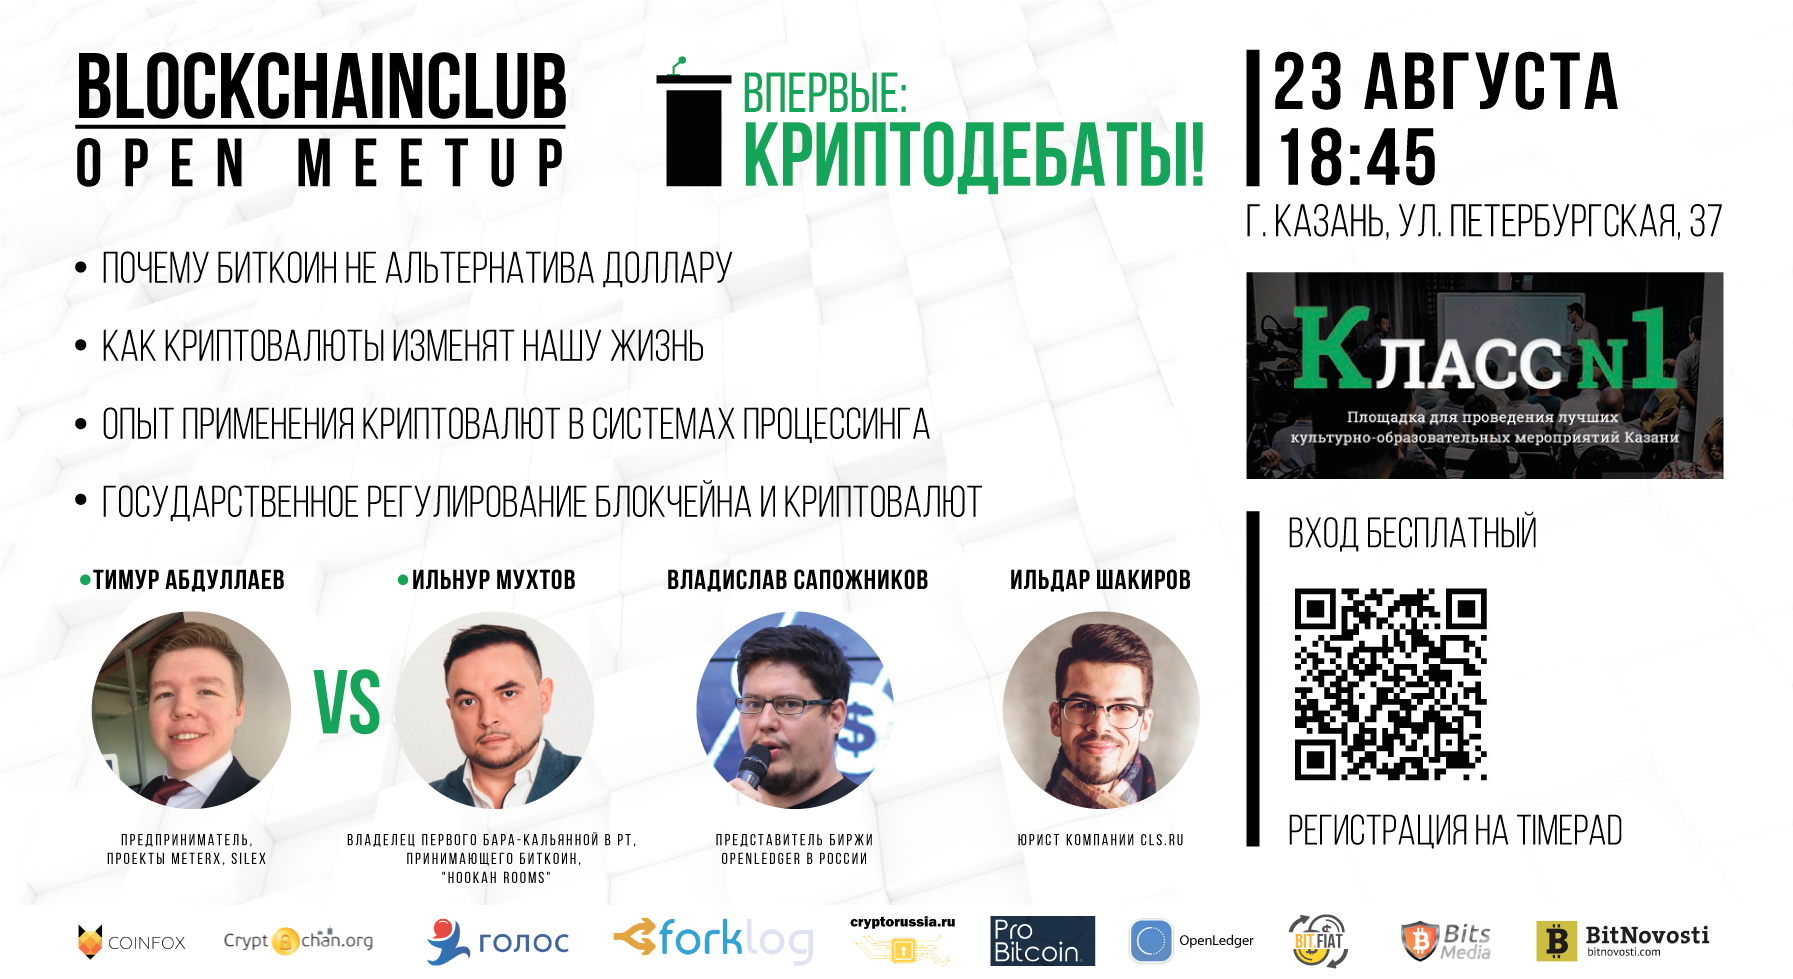 Blockchain Club. Open